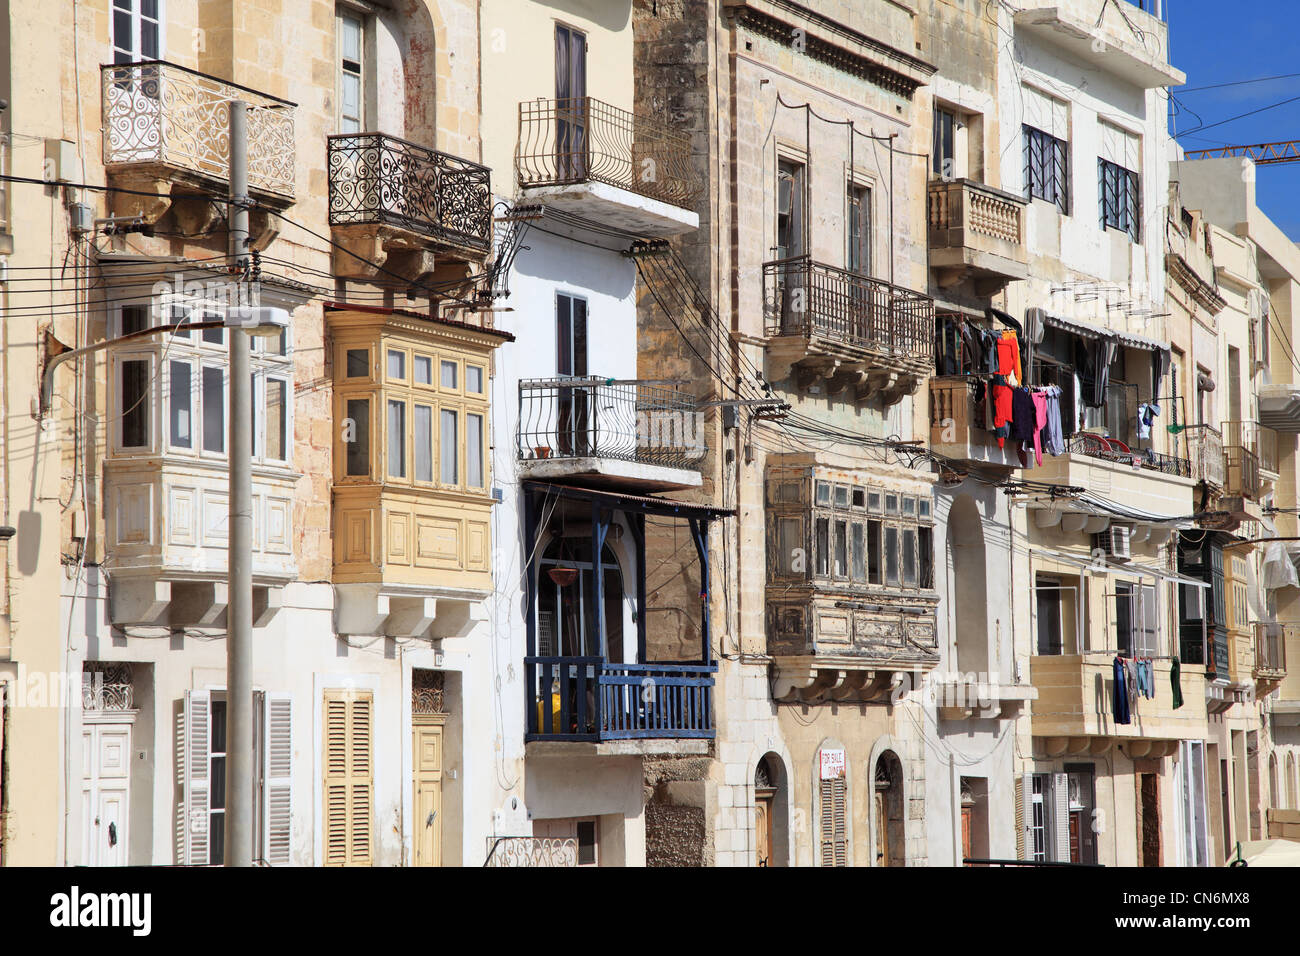 Collection of traditional Maltese town houses with balconies and bay windows, Kalkara, Malta, Europe - Stock Image